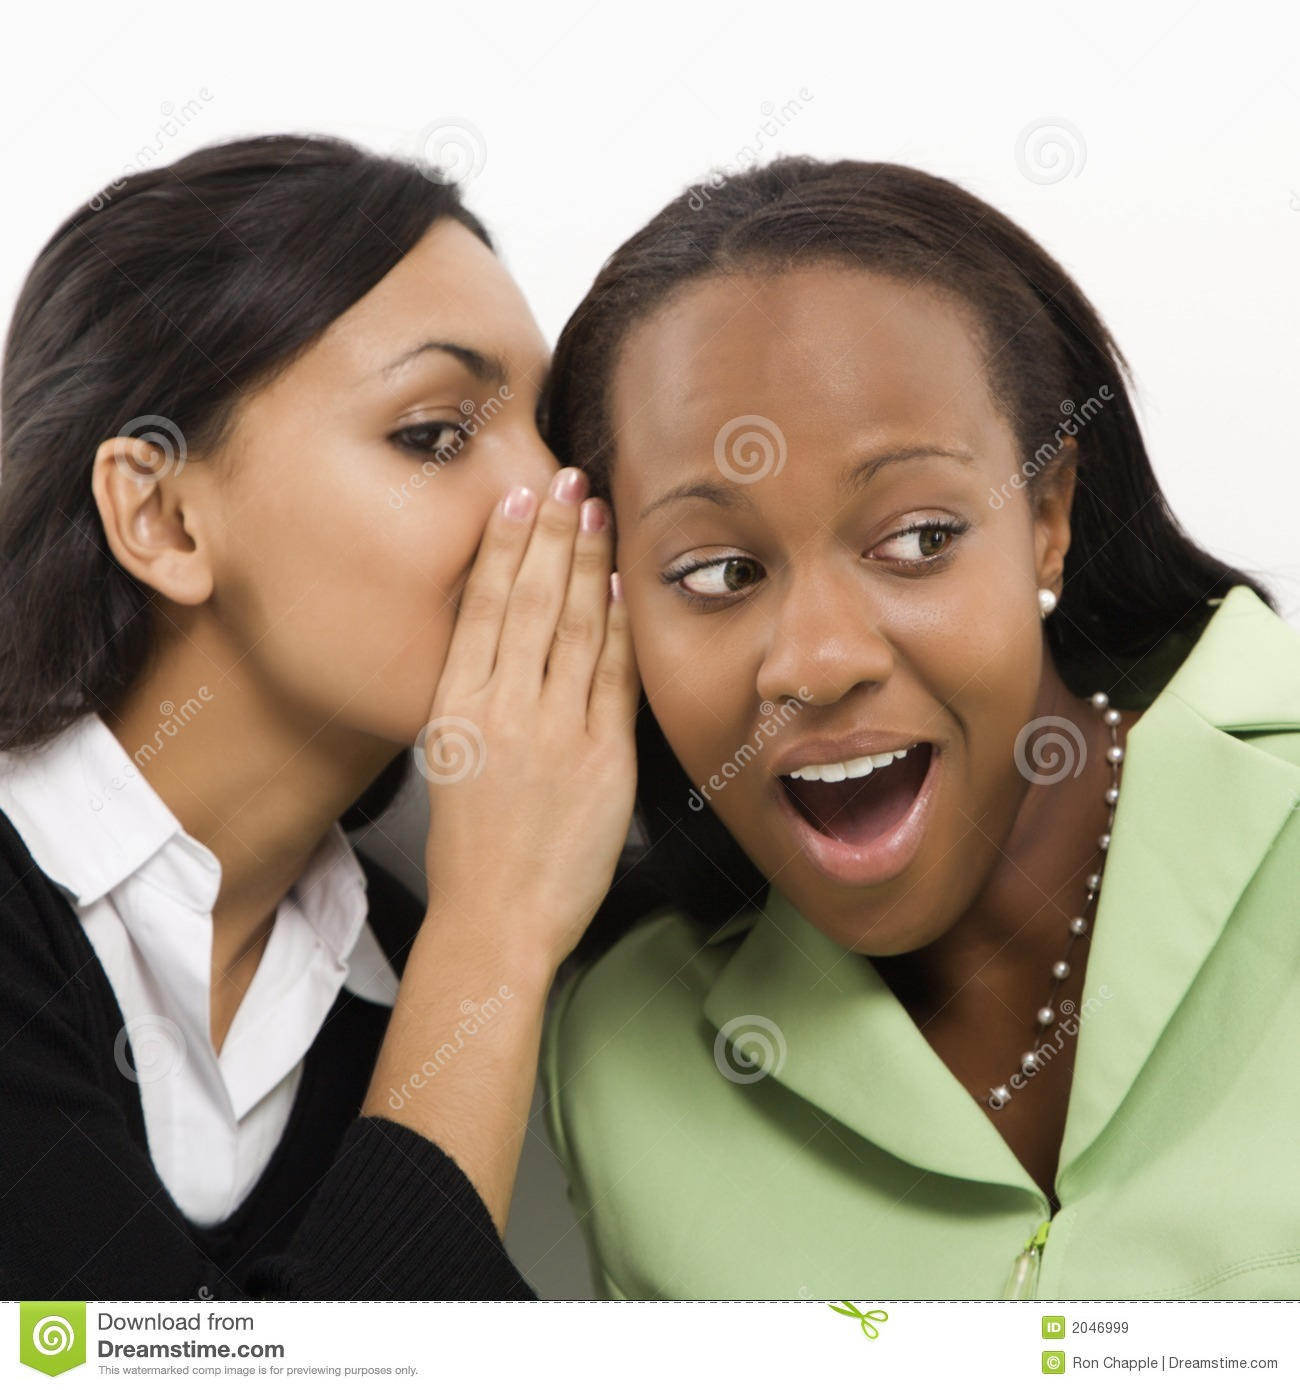 ... adult woman whispering in ear of mid-adult African-American woman